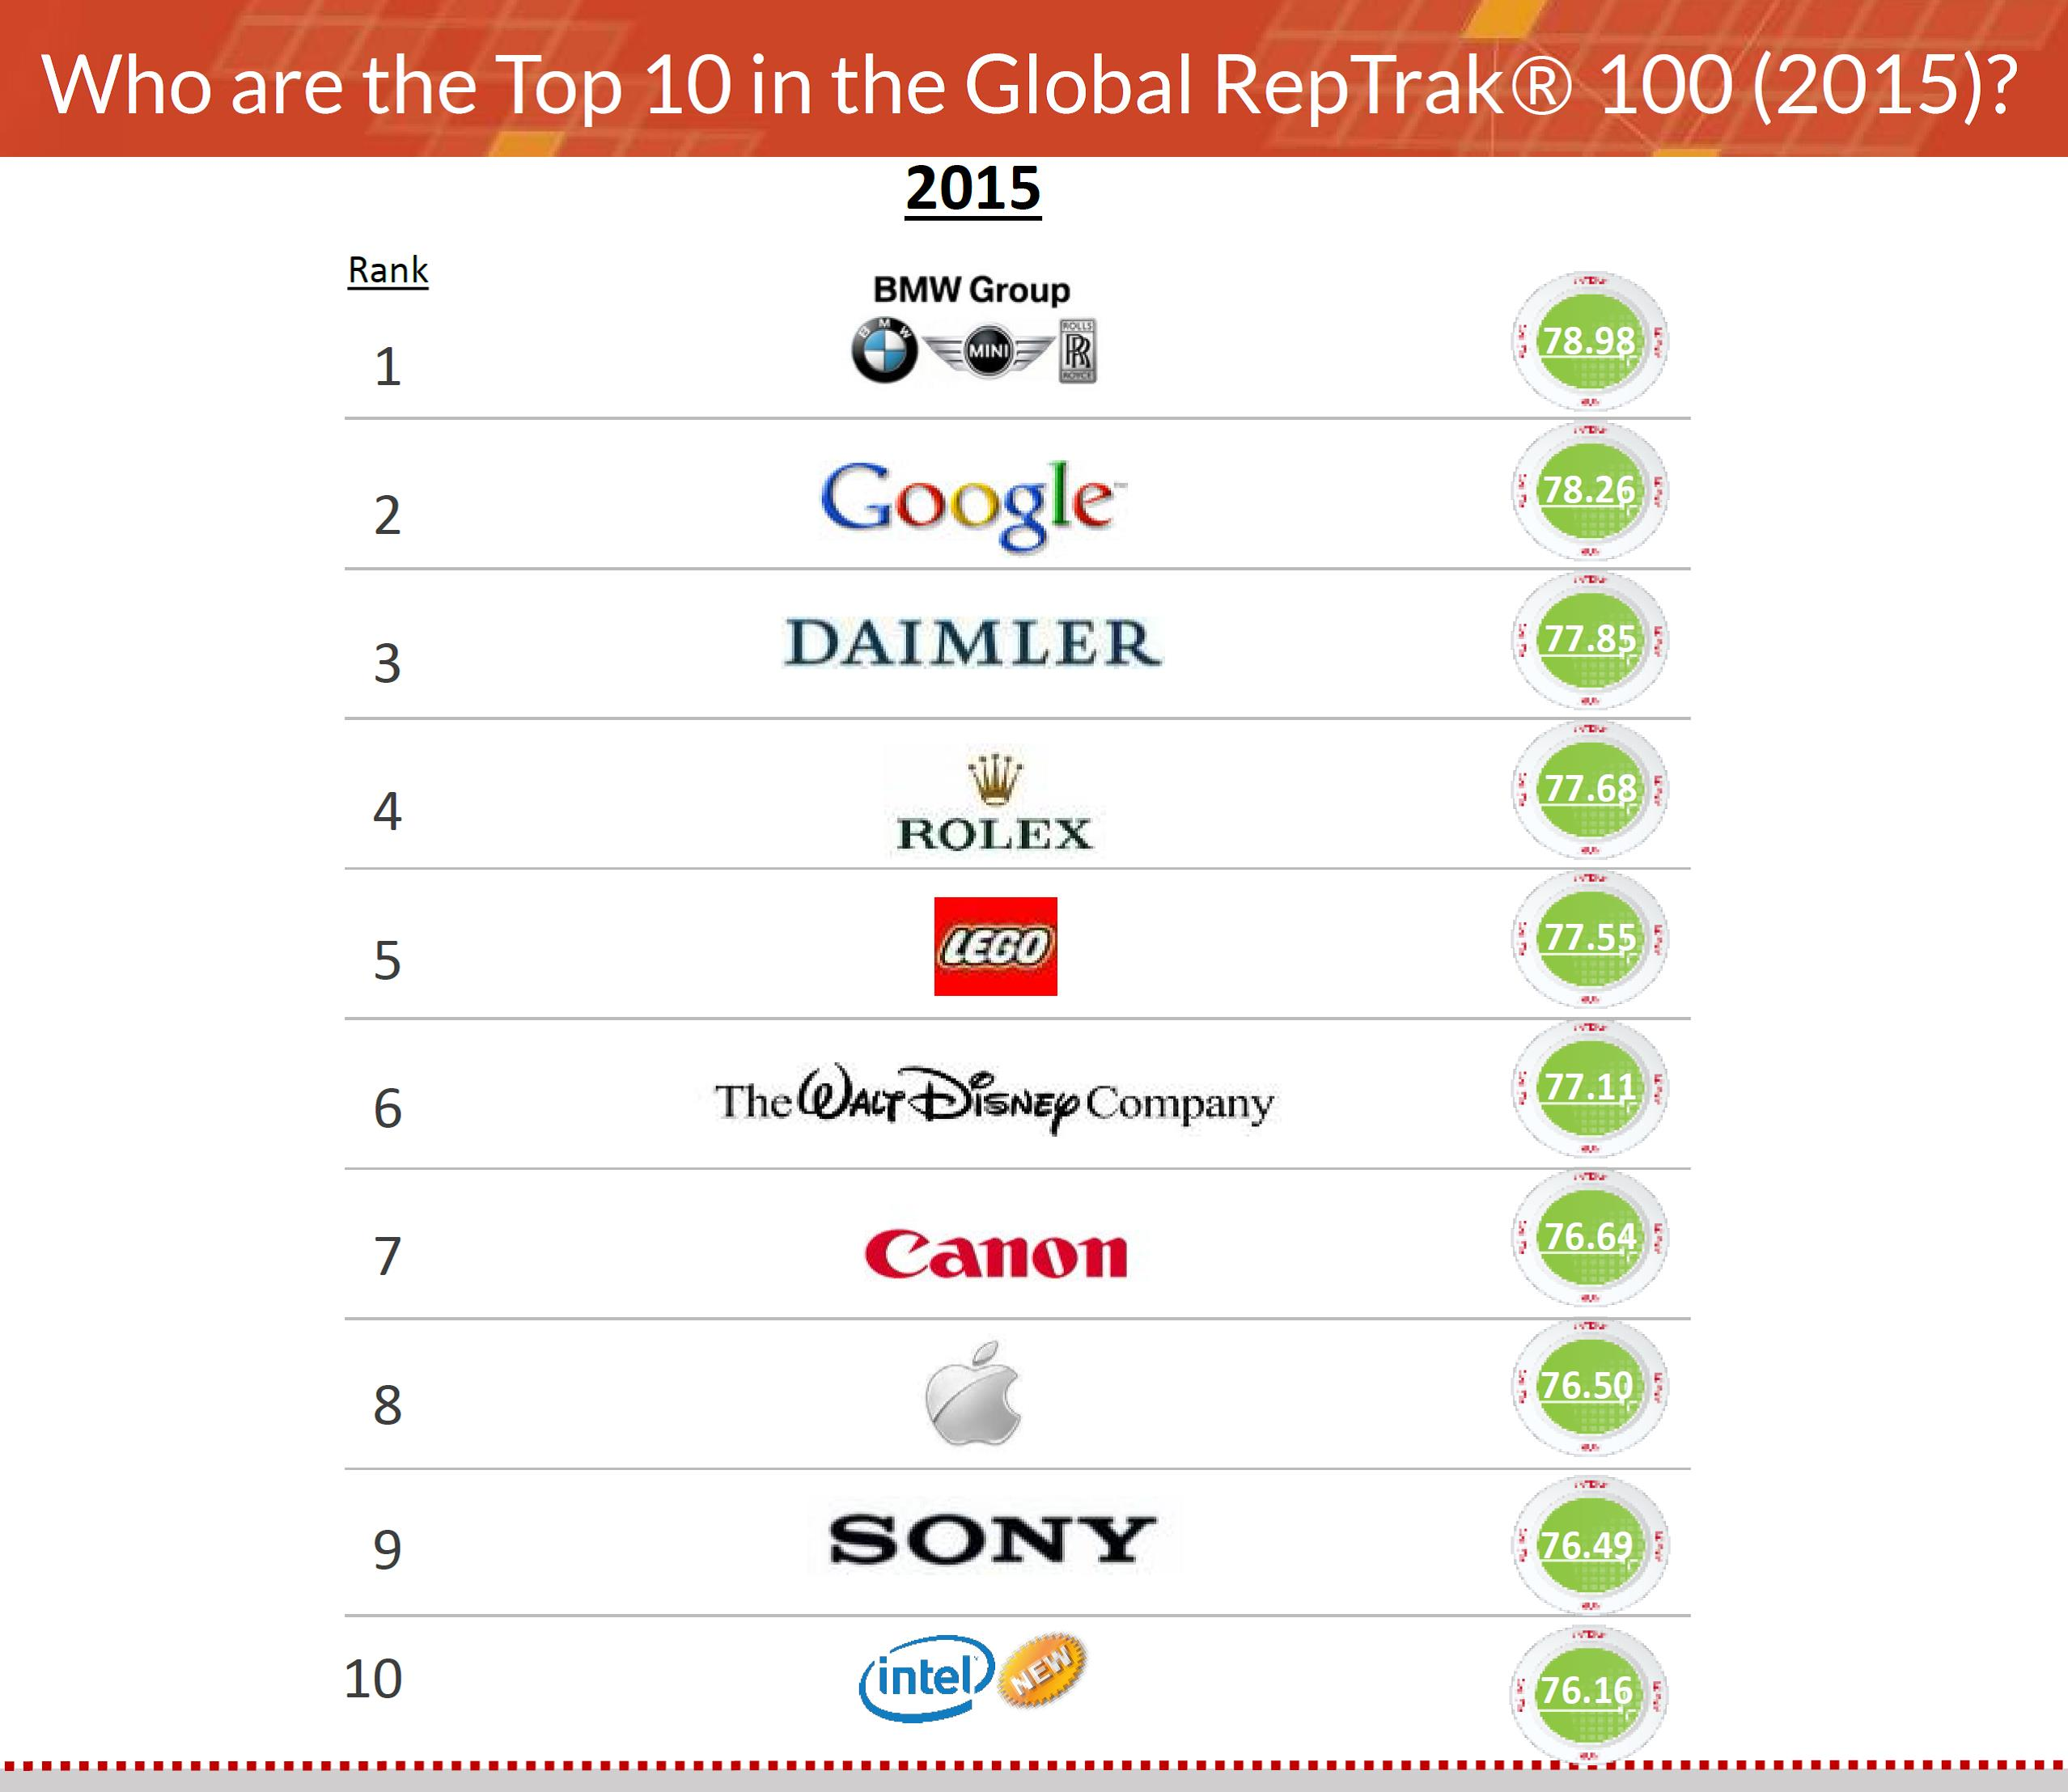 1 BMW Group 2 Google 3 Daimler 4 Rolex 5 Lego 6 The Walt Disney Company 7 Canon 8 Apple 9 Sony 10 Intel